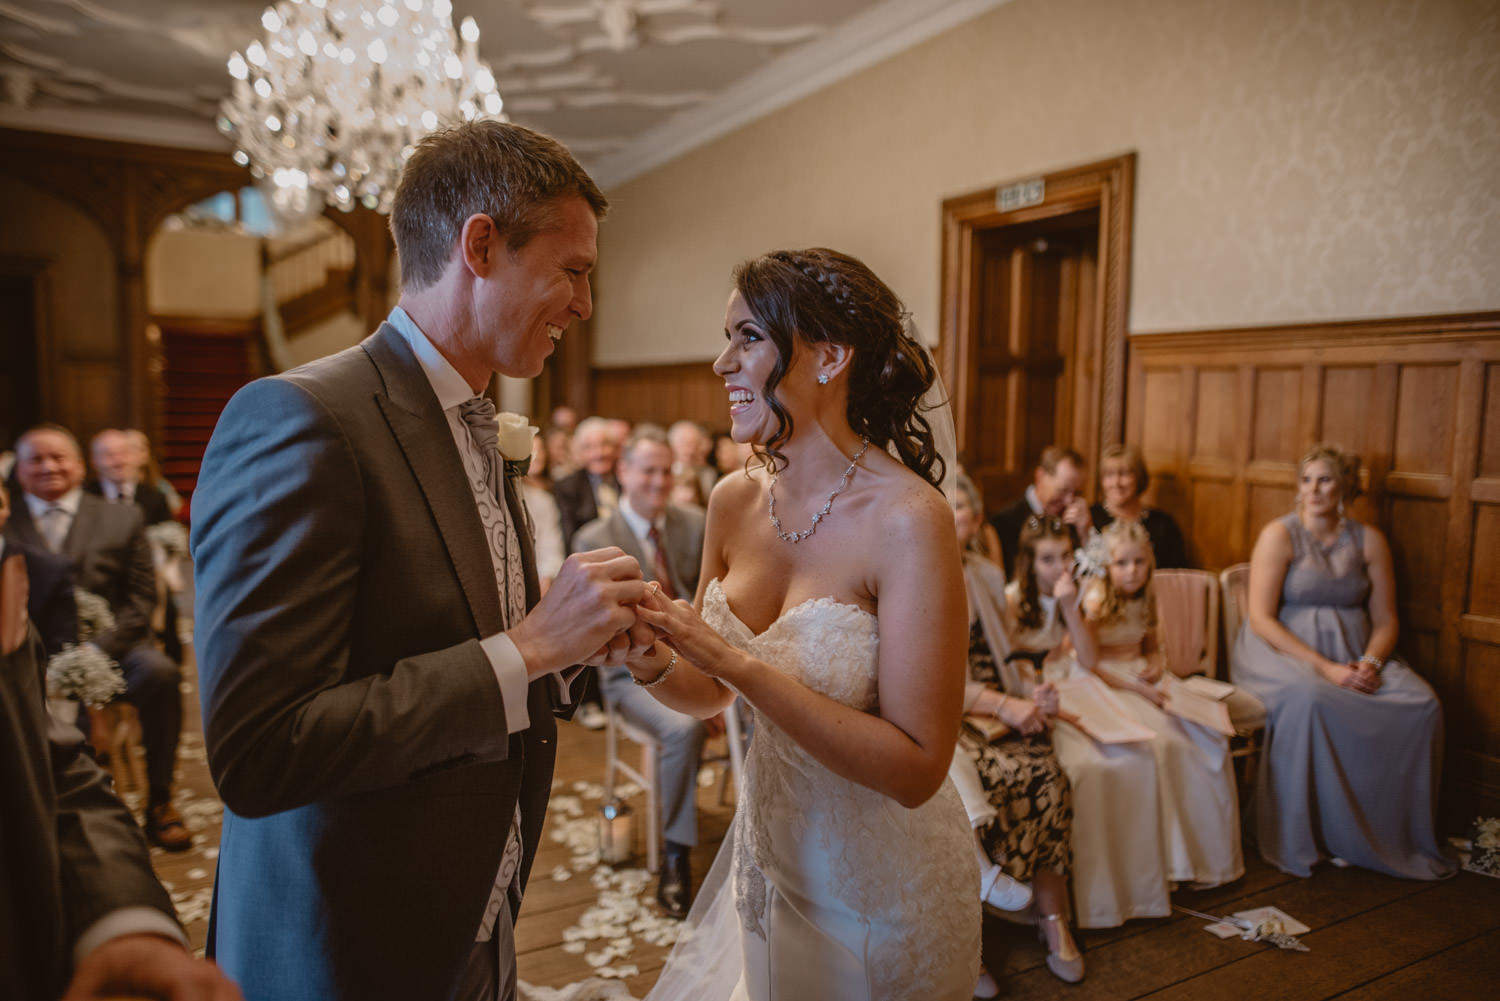 Getting Married photography